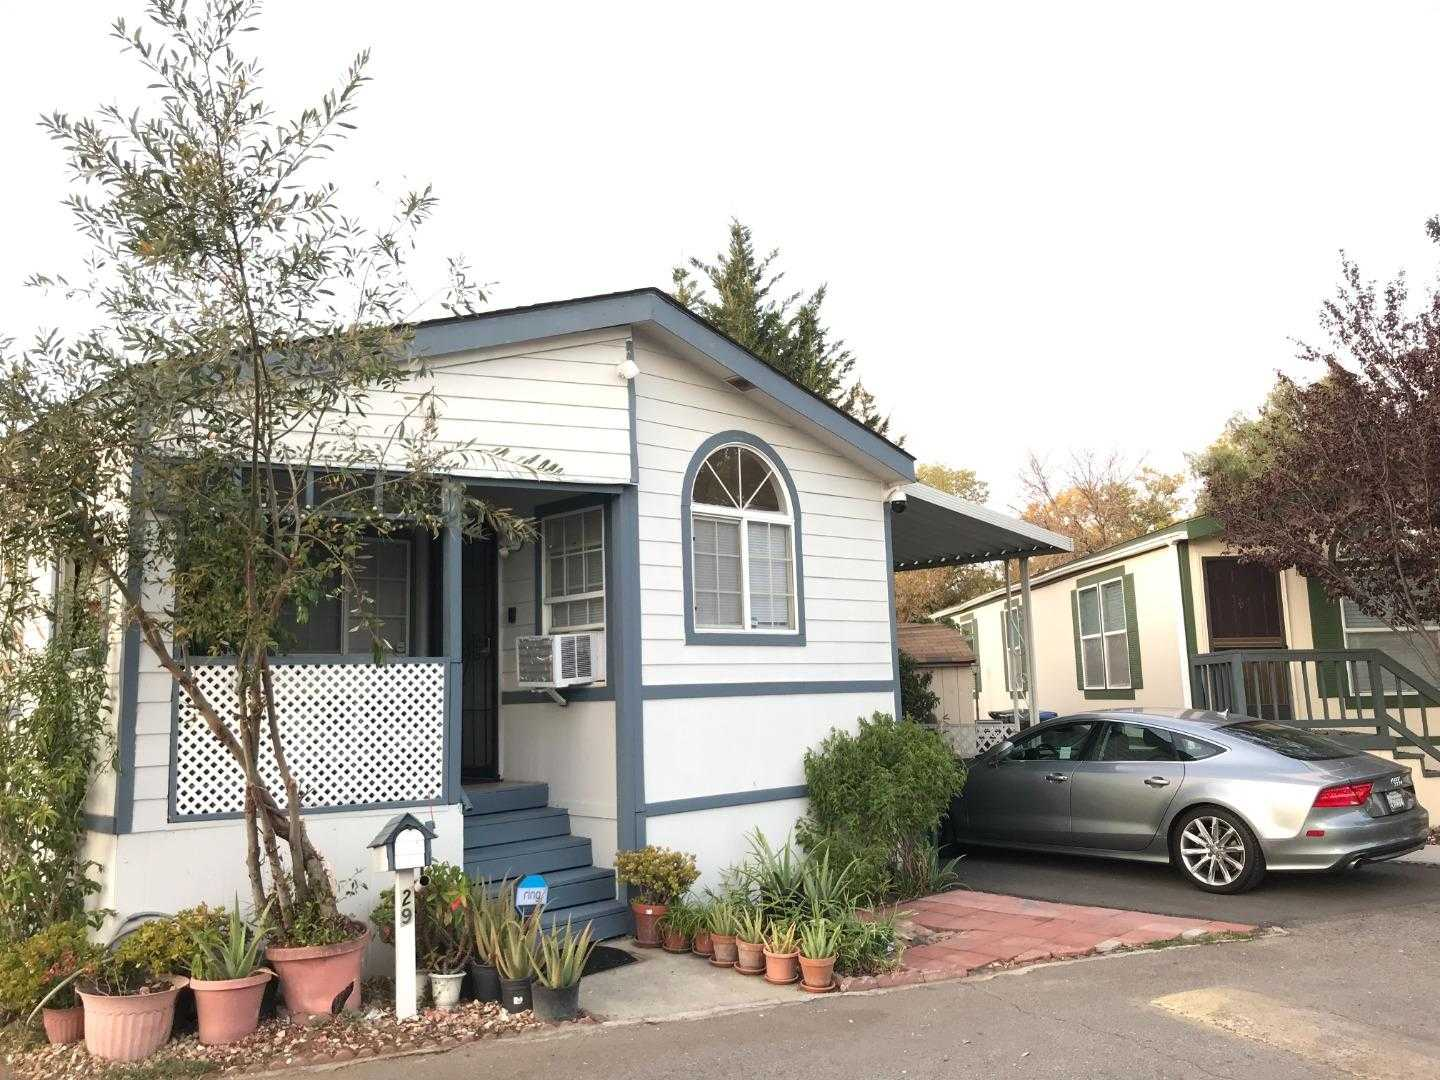 $279,900 - 3Br/2Ba -  for Sale in San Jose